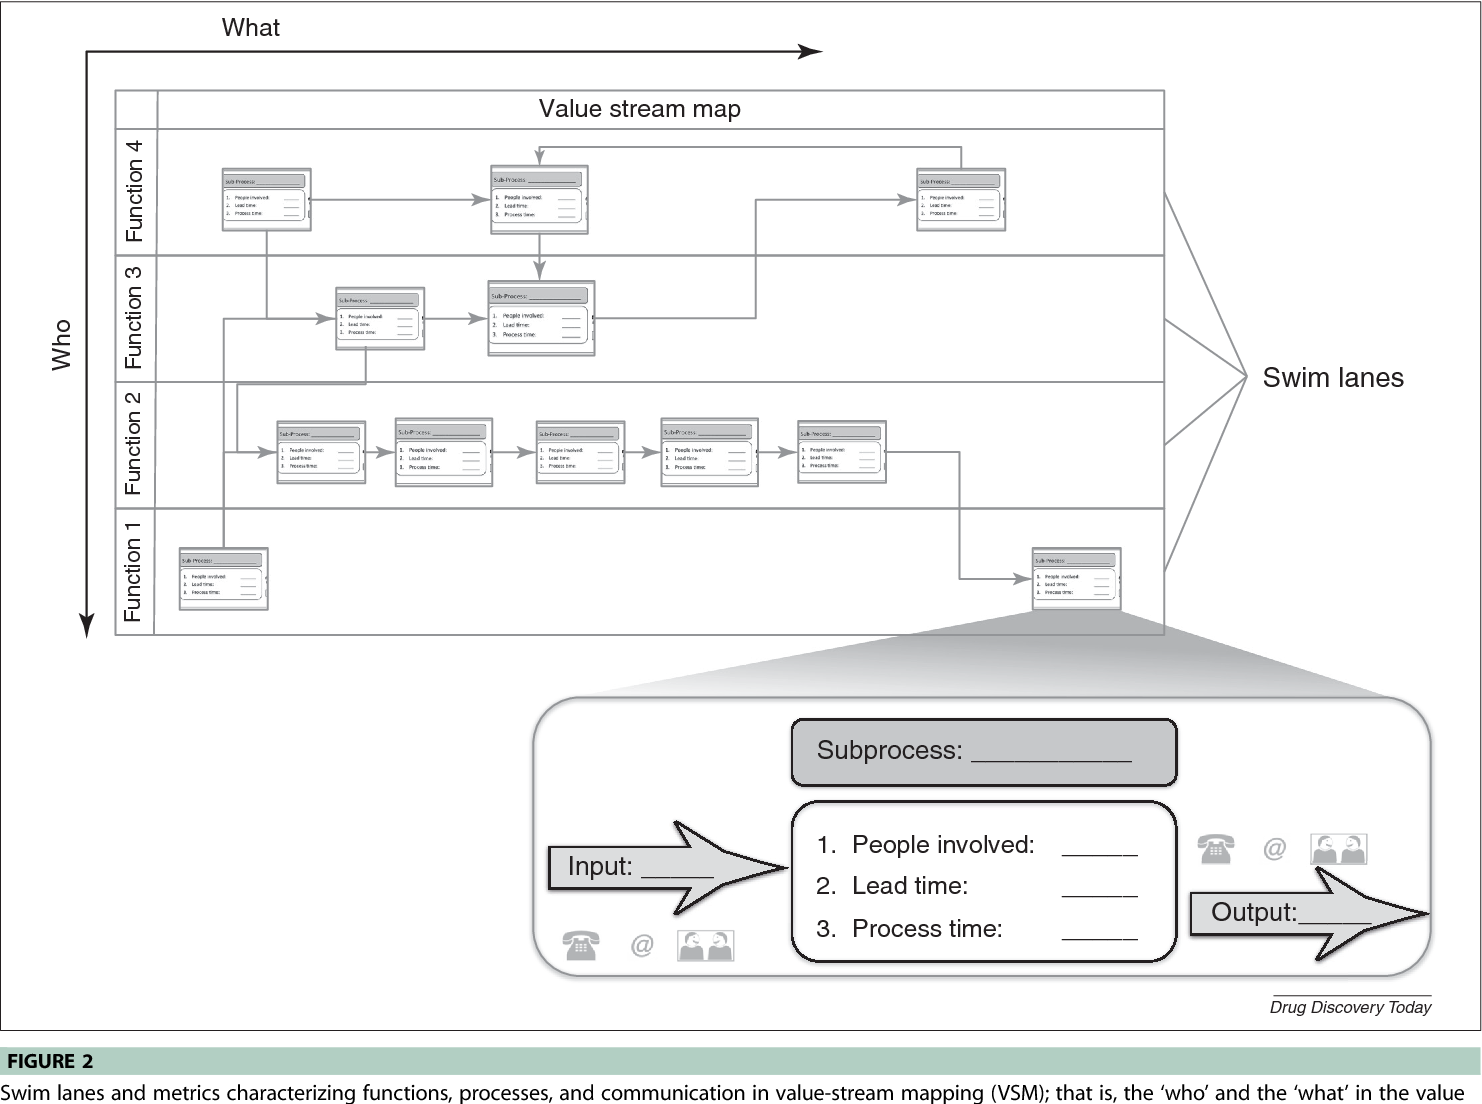 A new application of value-stream mapping in new drug development: Value Stream Mapping Development on